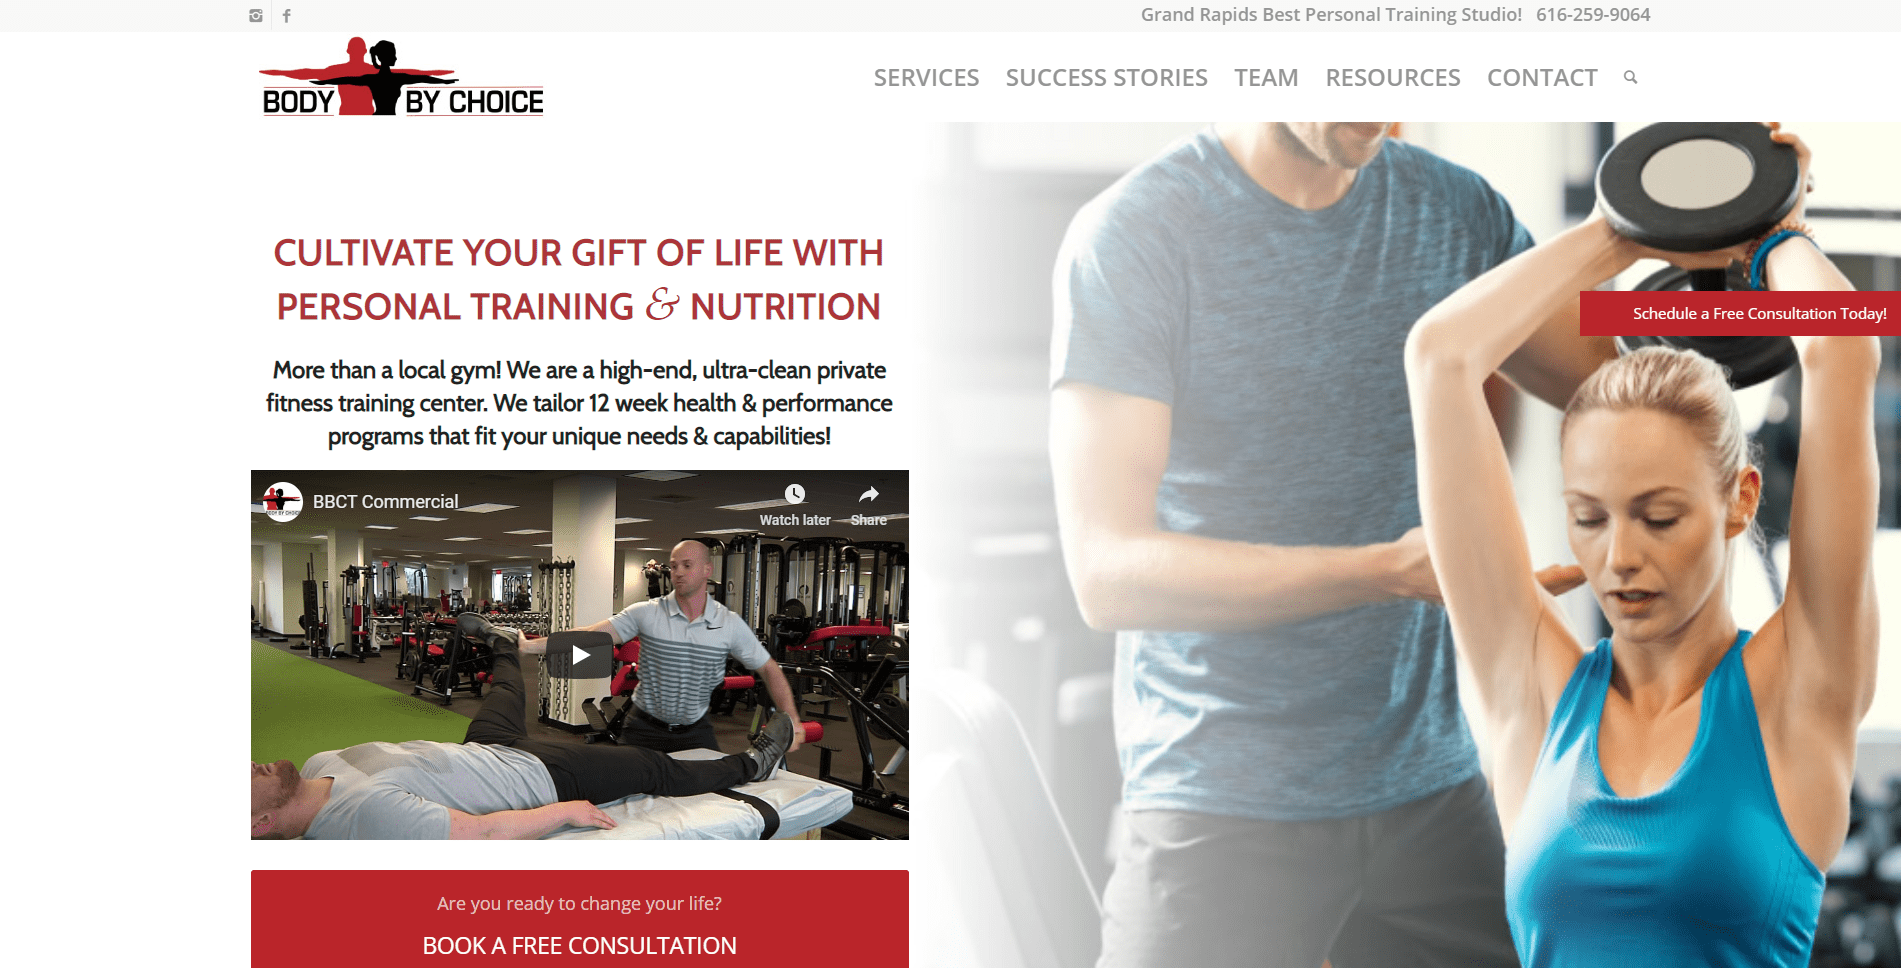 Body by Choice Training Website Design and Marketing by Purple Gen - Purple-Gen.com